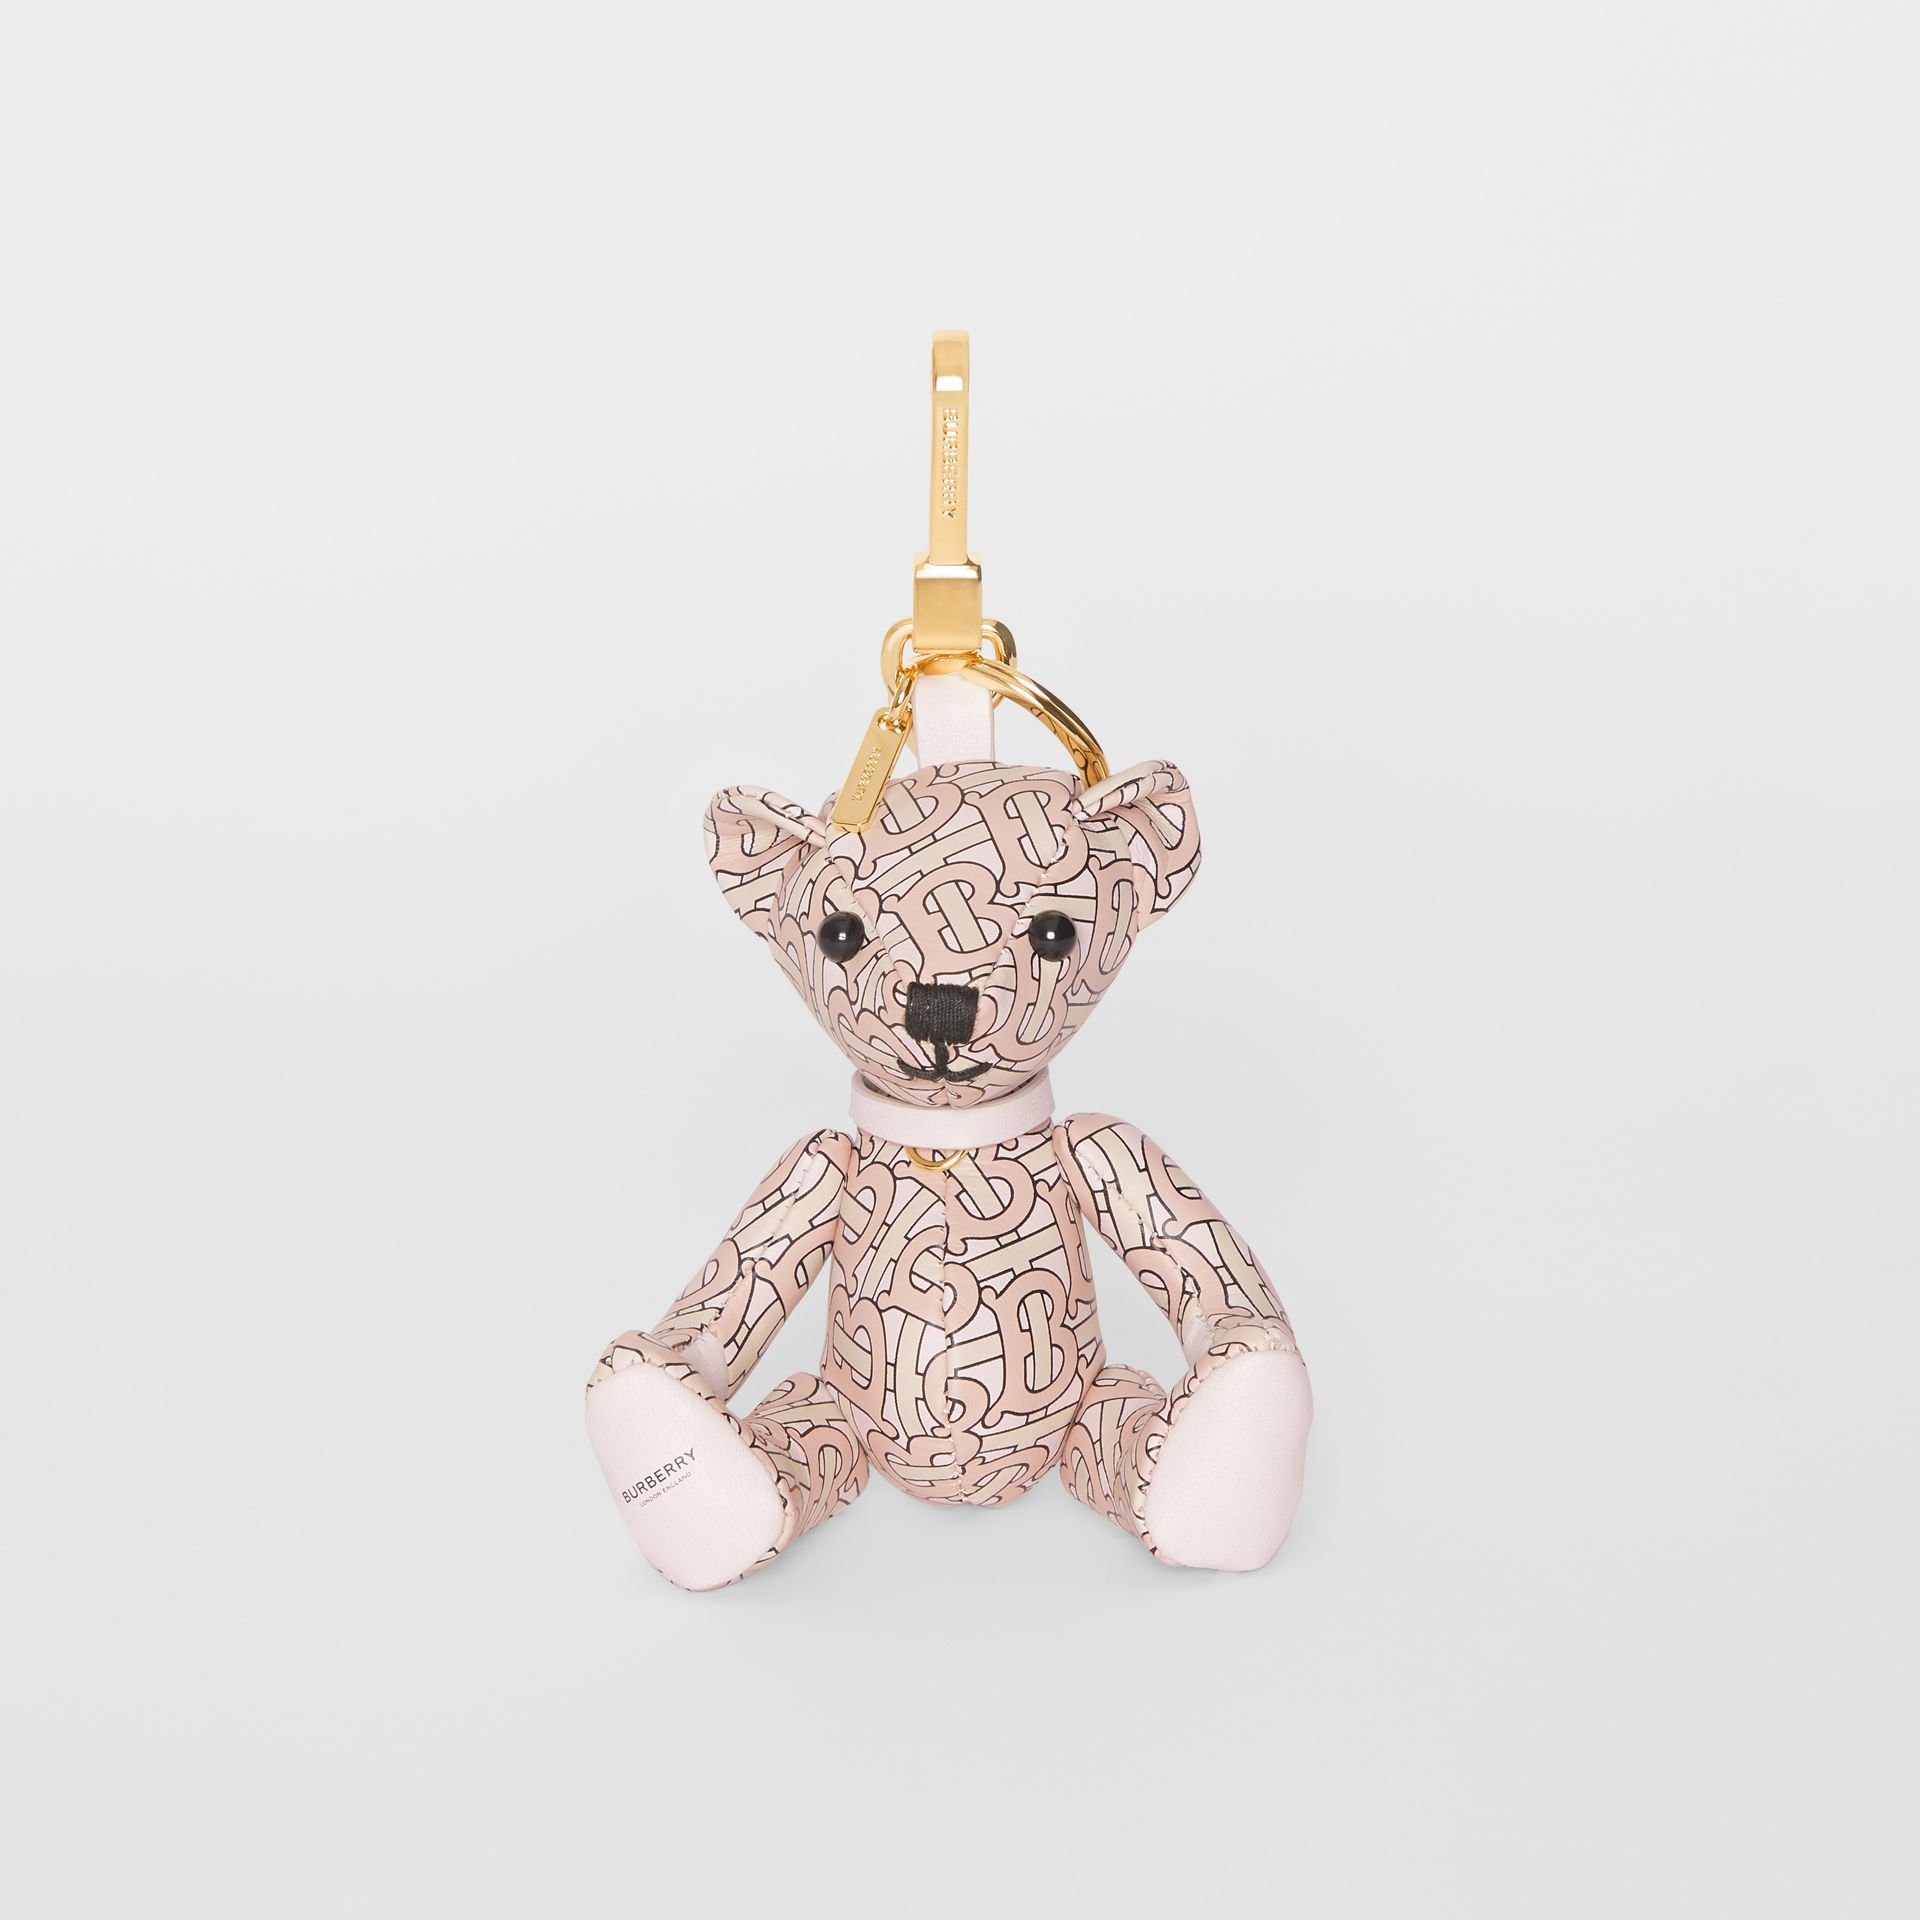 Bijou porte-clés Thomas Bear en cuir Monogram (Rose Blush) - Femme | Burberry - photo de la galerie 2